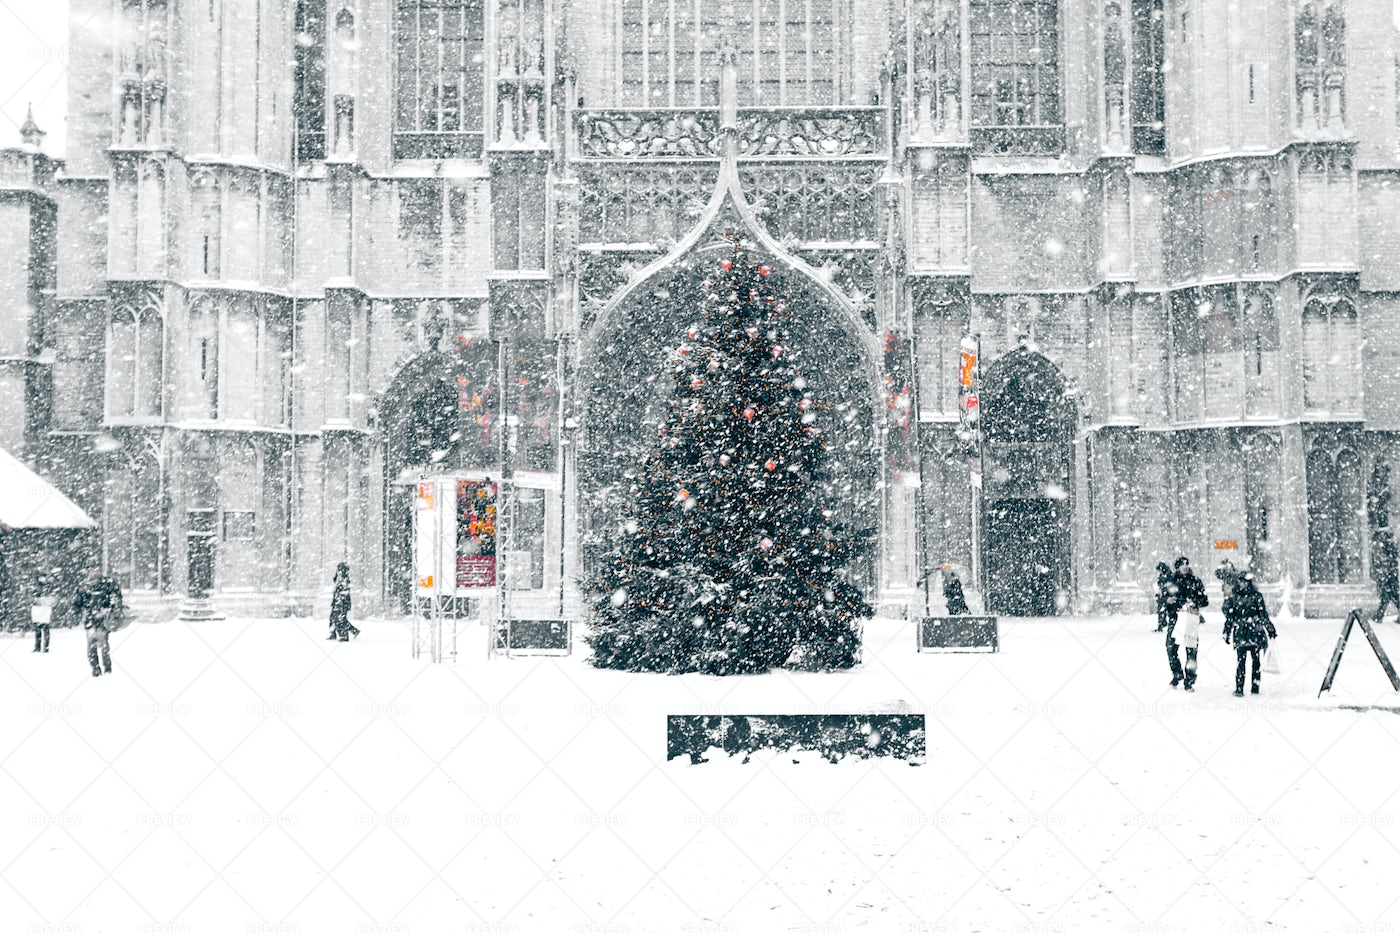 Snowstorm In Town: Stock Photos